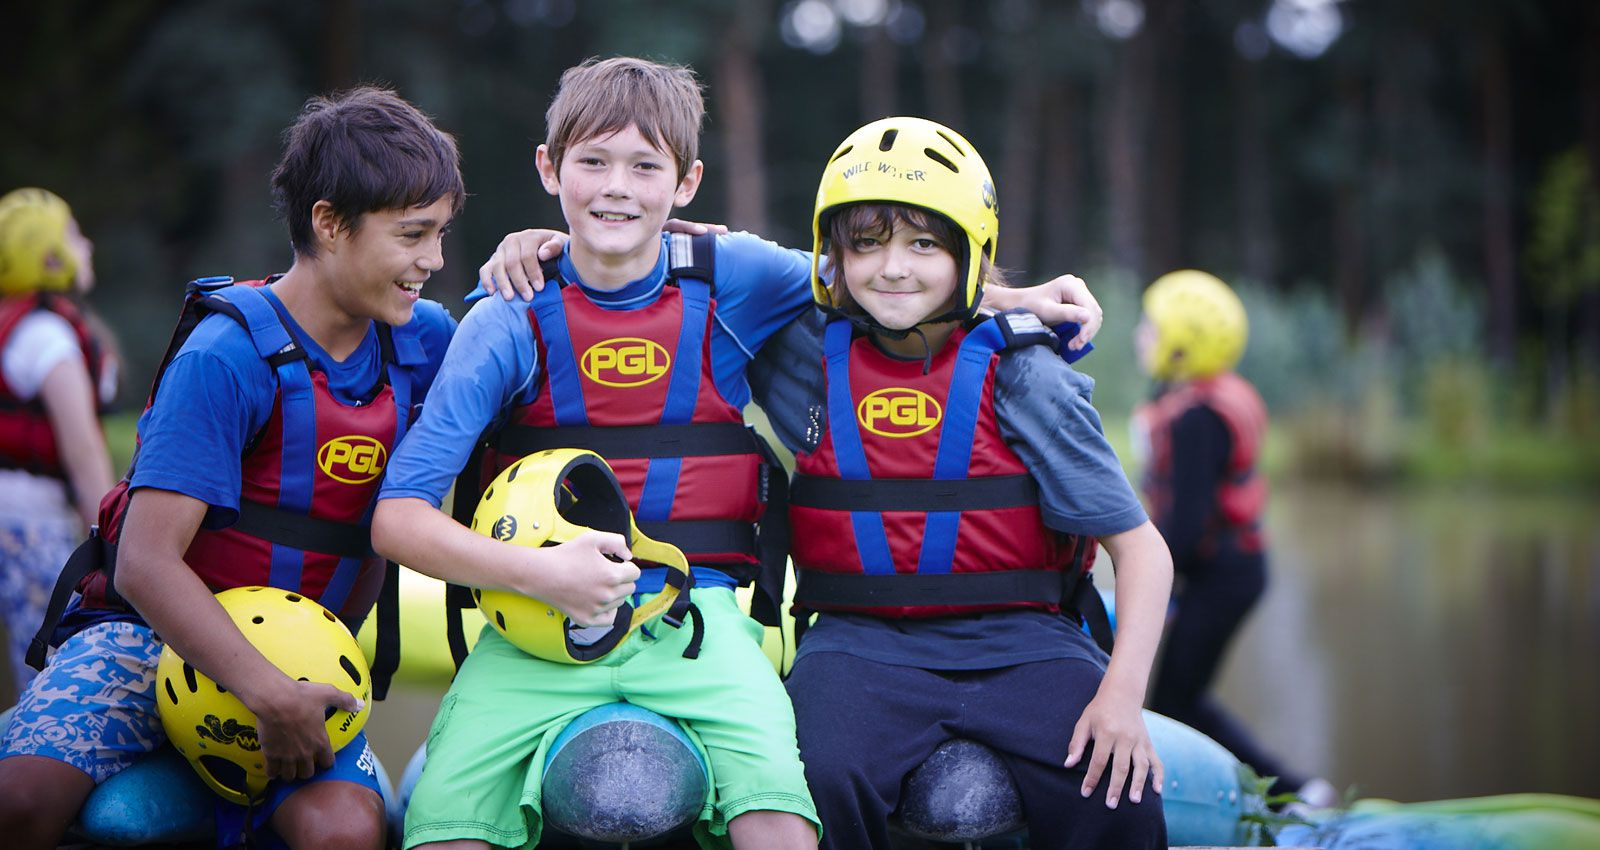 PGL Adventure Holidays - Specialist Holidays and Summer Camps for 7-17 year olds - Information for Parents